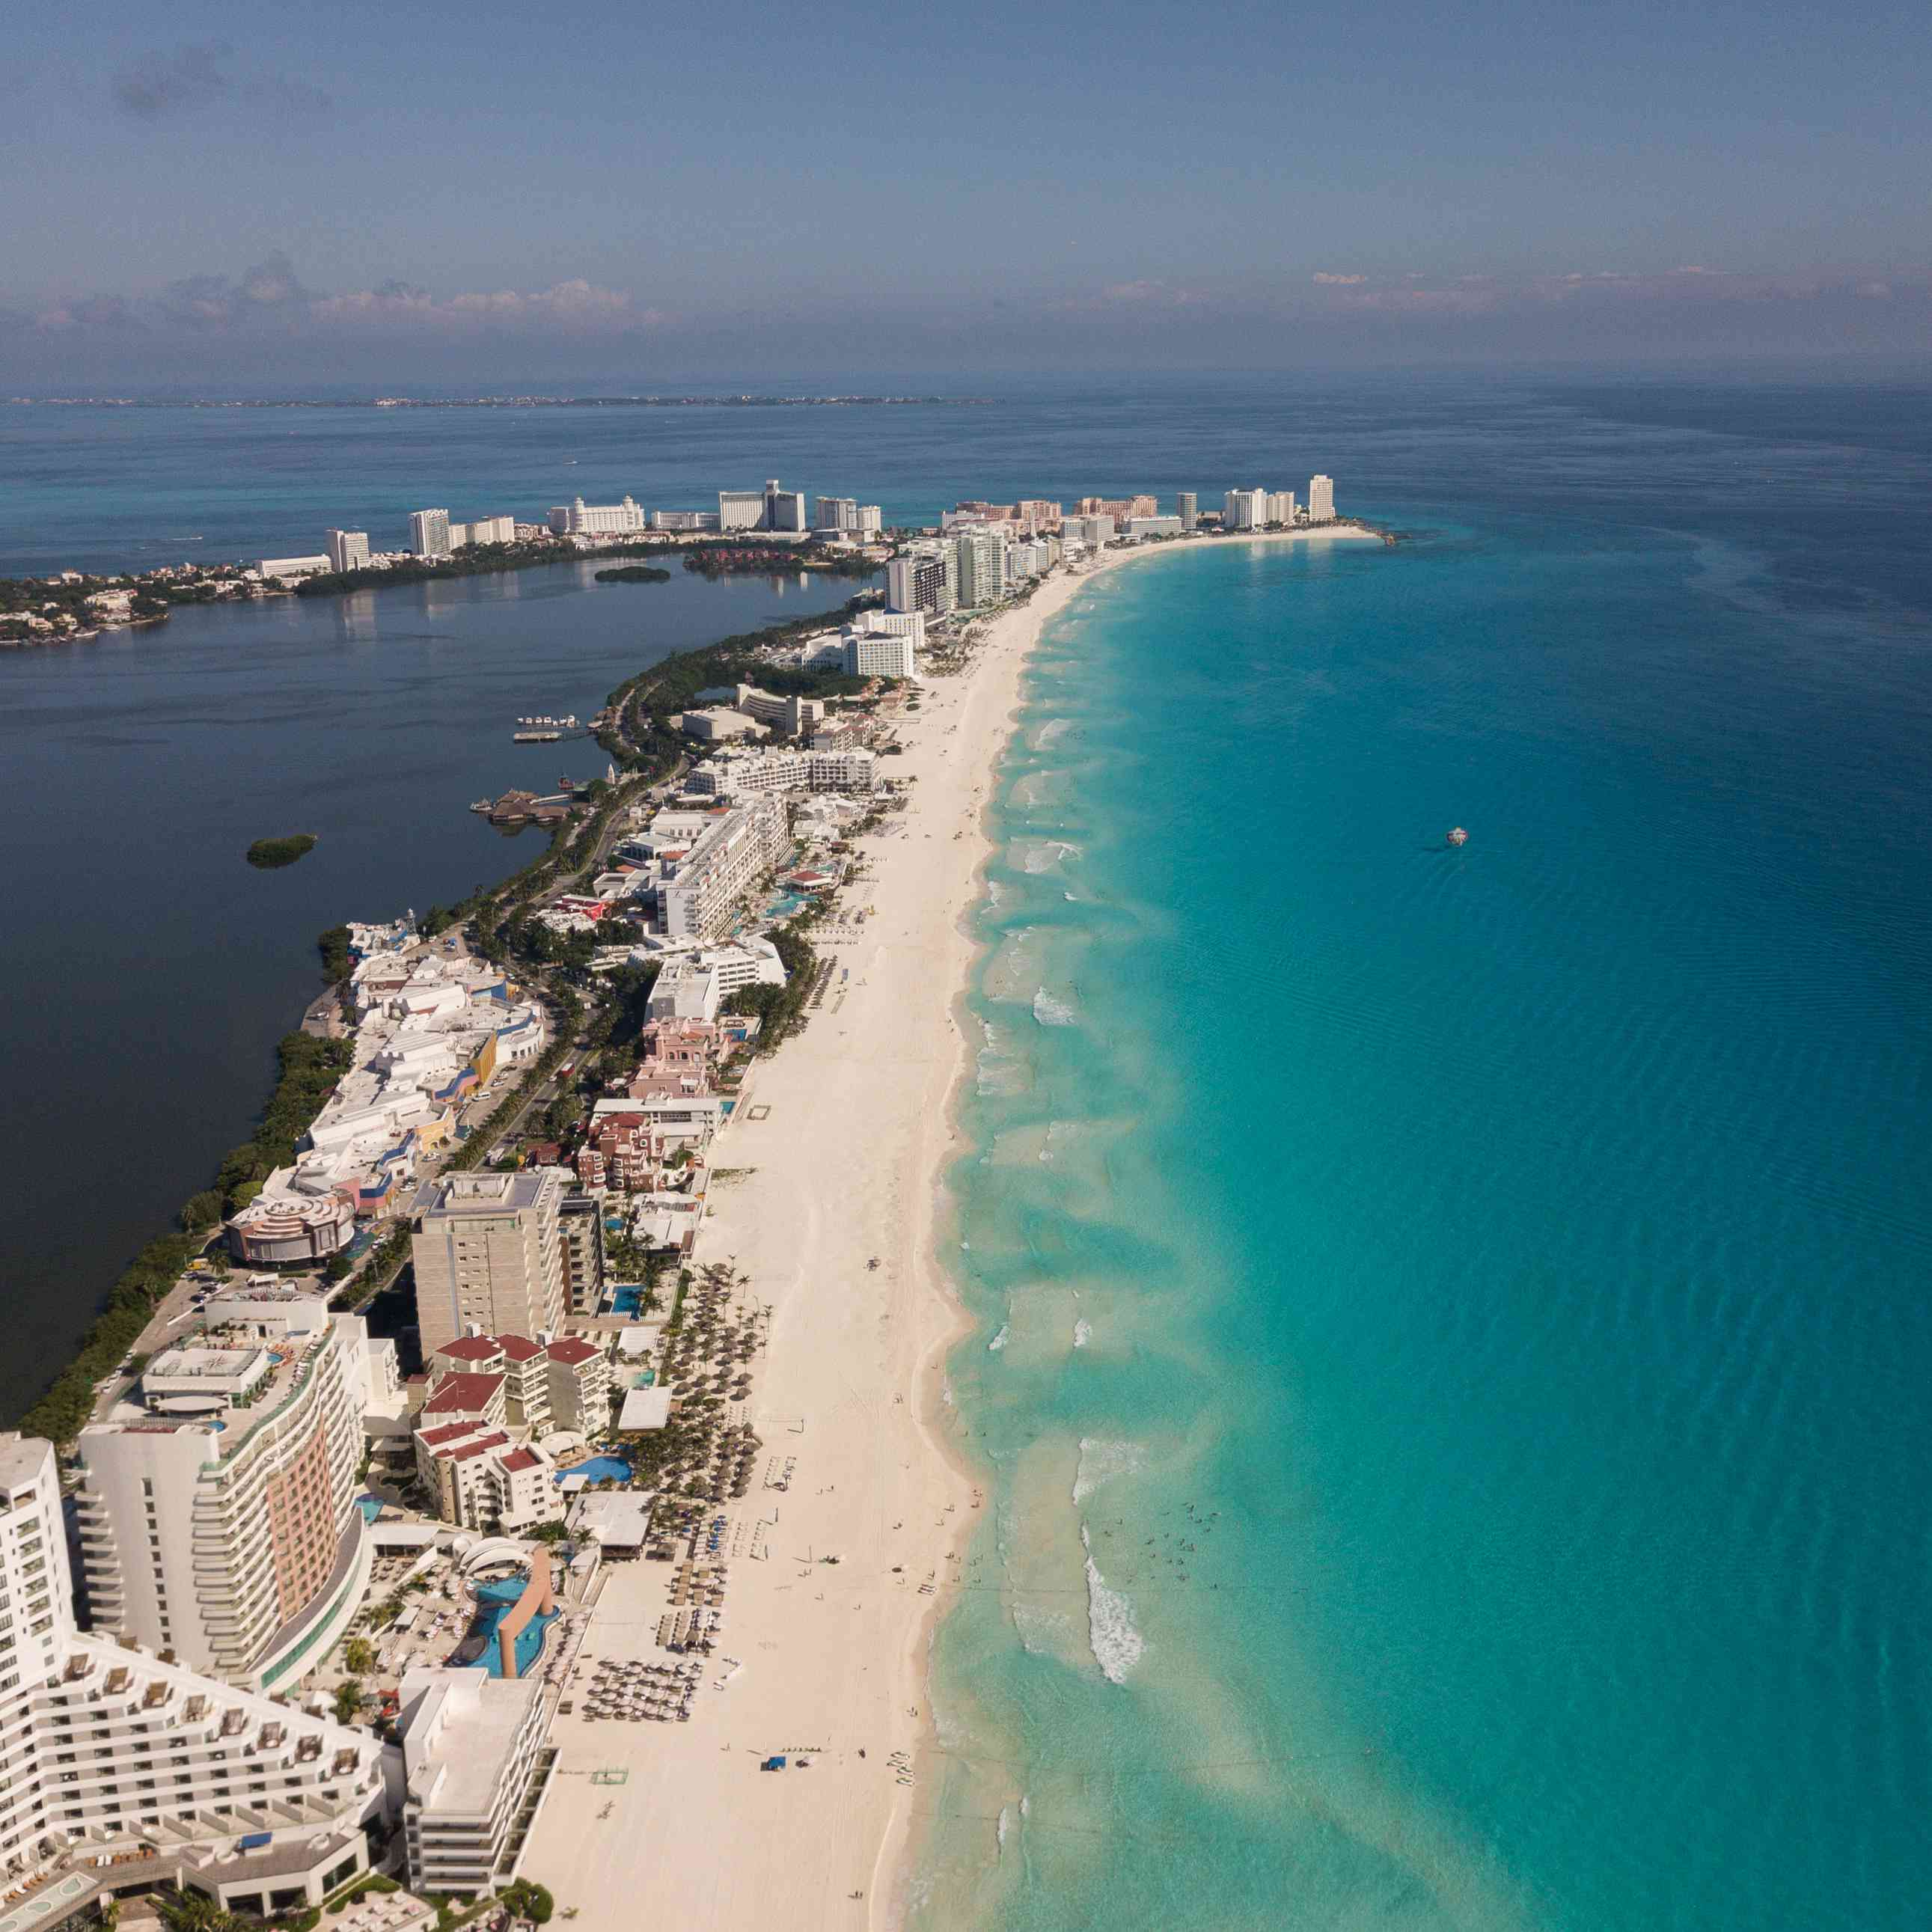 Aerial view of the east side beaches in Cancun